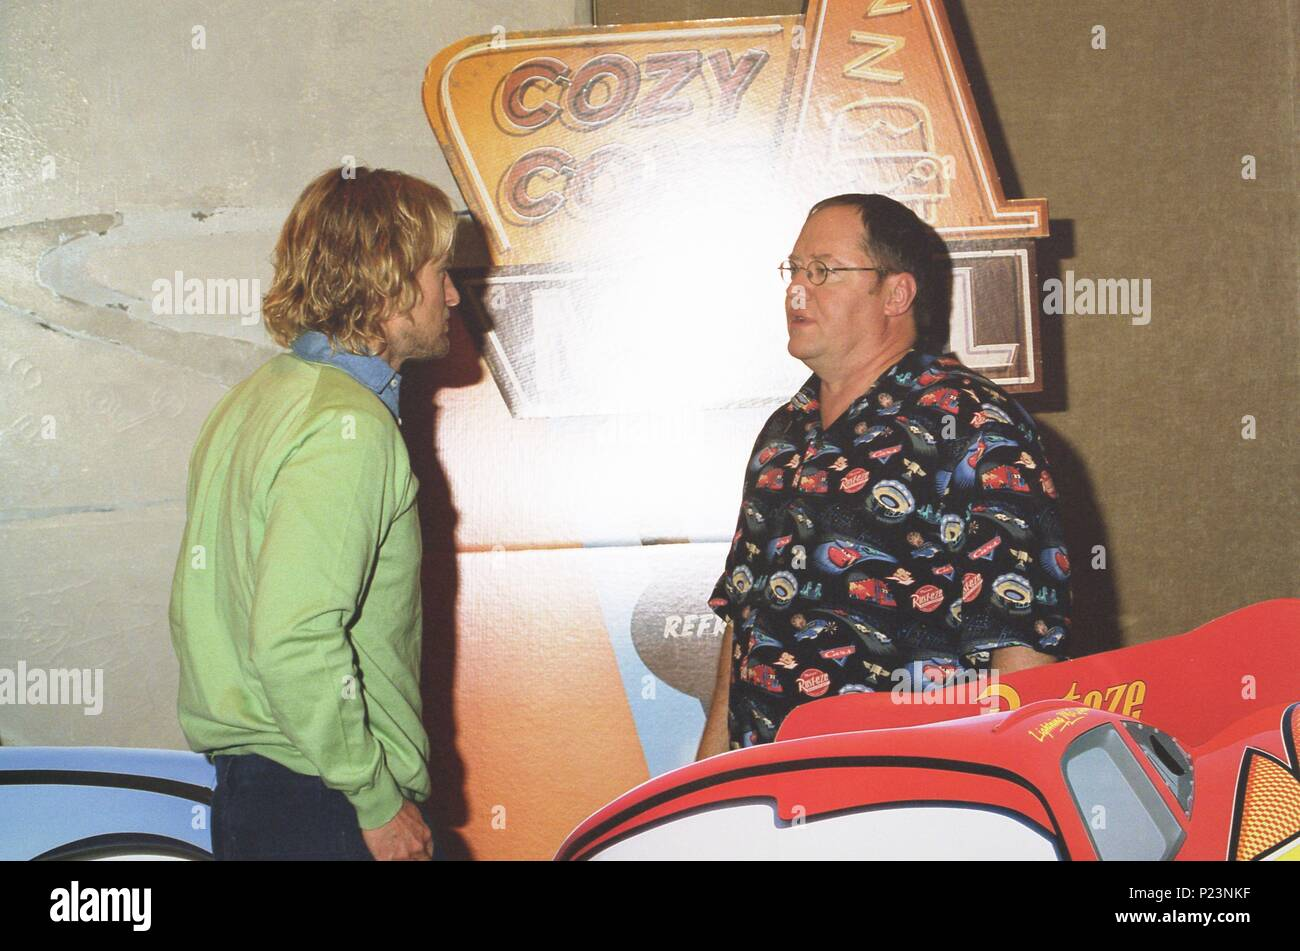 Pixar Cars 2006 High Resolution Stock Photography And Images Alamy